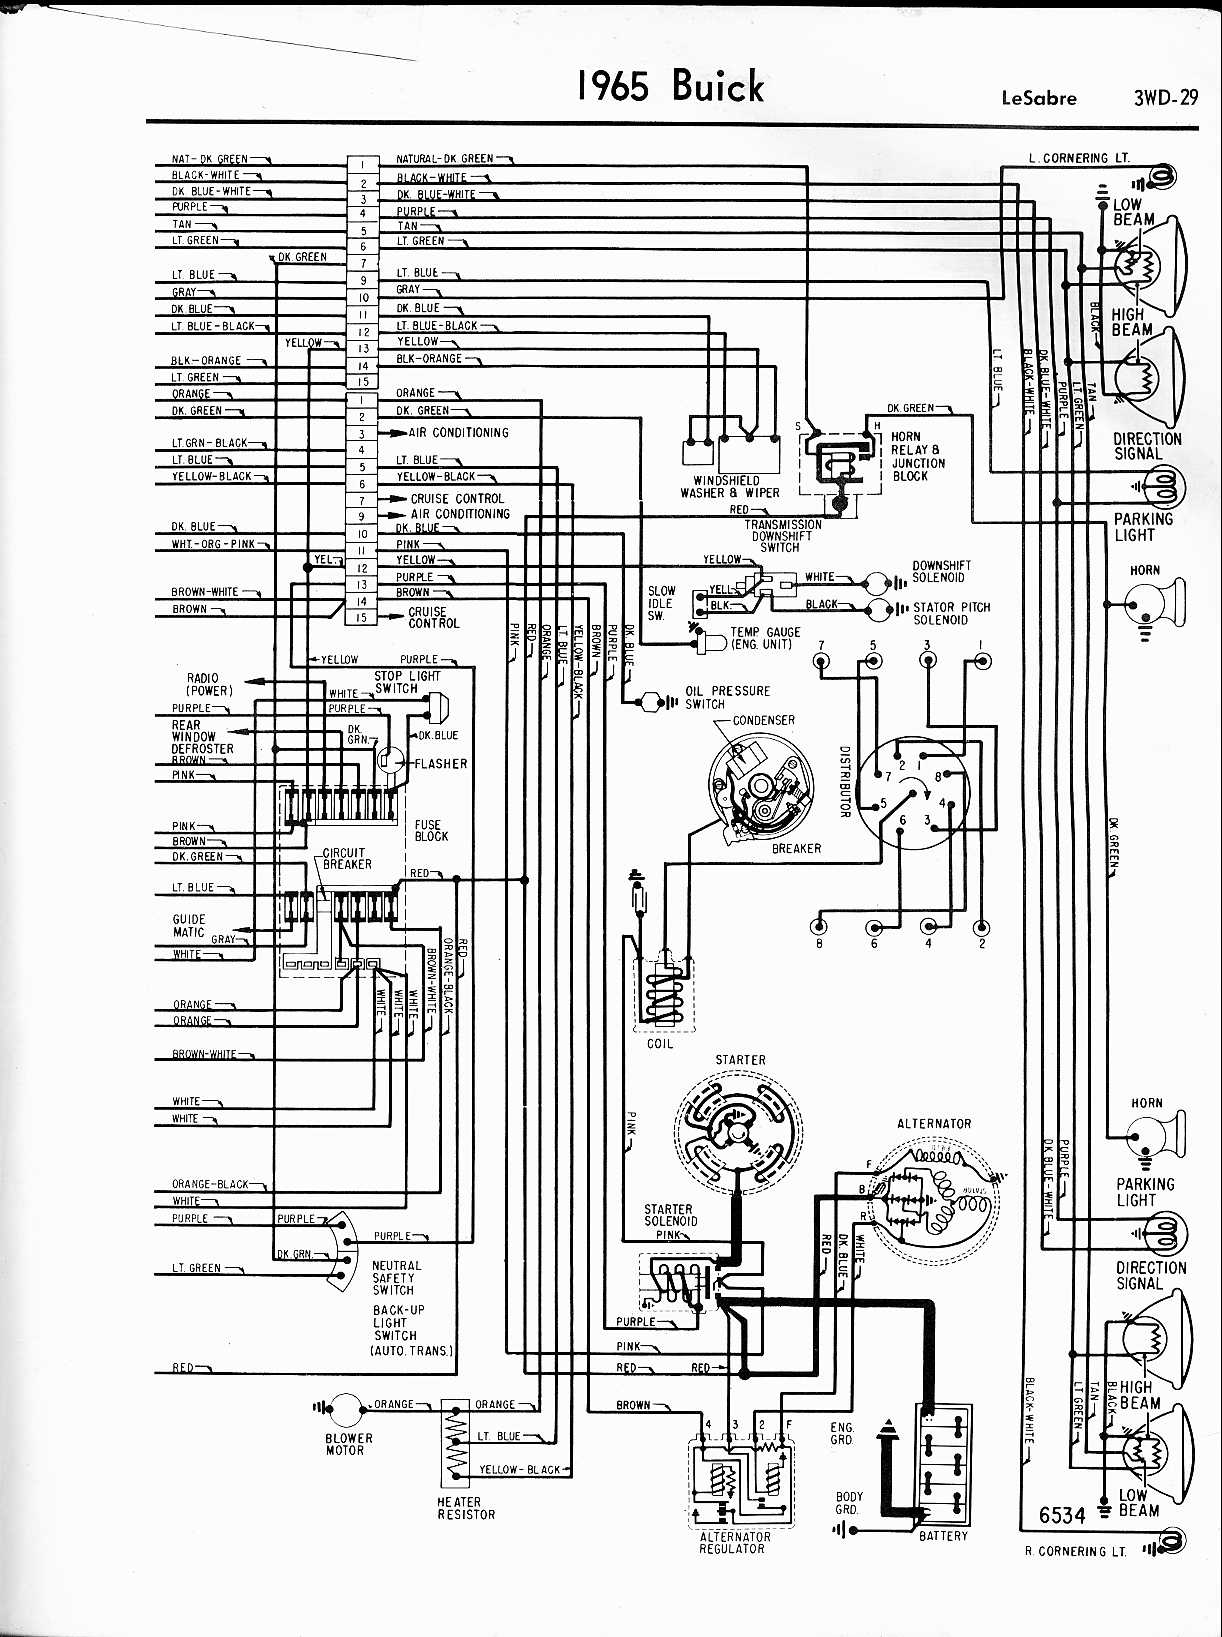 Buick Wiring Diagrams: 1957-1965 on free auto wiring schematic, free car repair manuals, free vehicle diagrams, free chilton diagrams, free car parts, electrical diagrams, free diagram templates, free schematic diagram, free auto diagrams, free home, free honda wiring diagram, free car schematics, free electronic schematics, free engine rebuilding diagrams, free car seats, free car diagnostic, free car tools, free car maintenance, free car engine diagrams, free toyota repair diagrams,